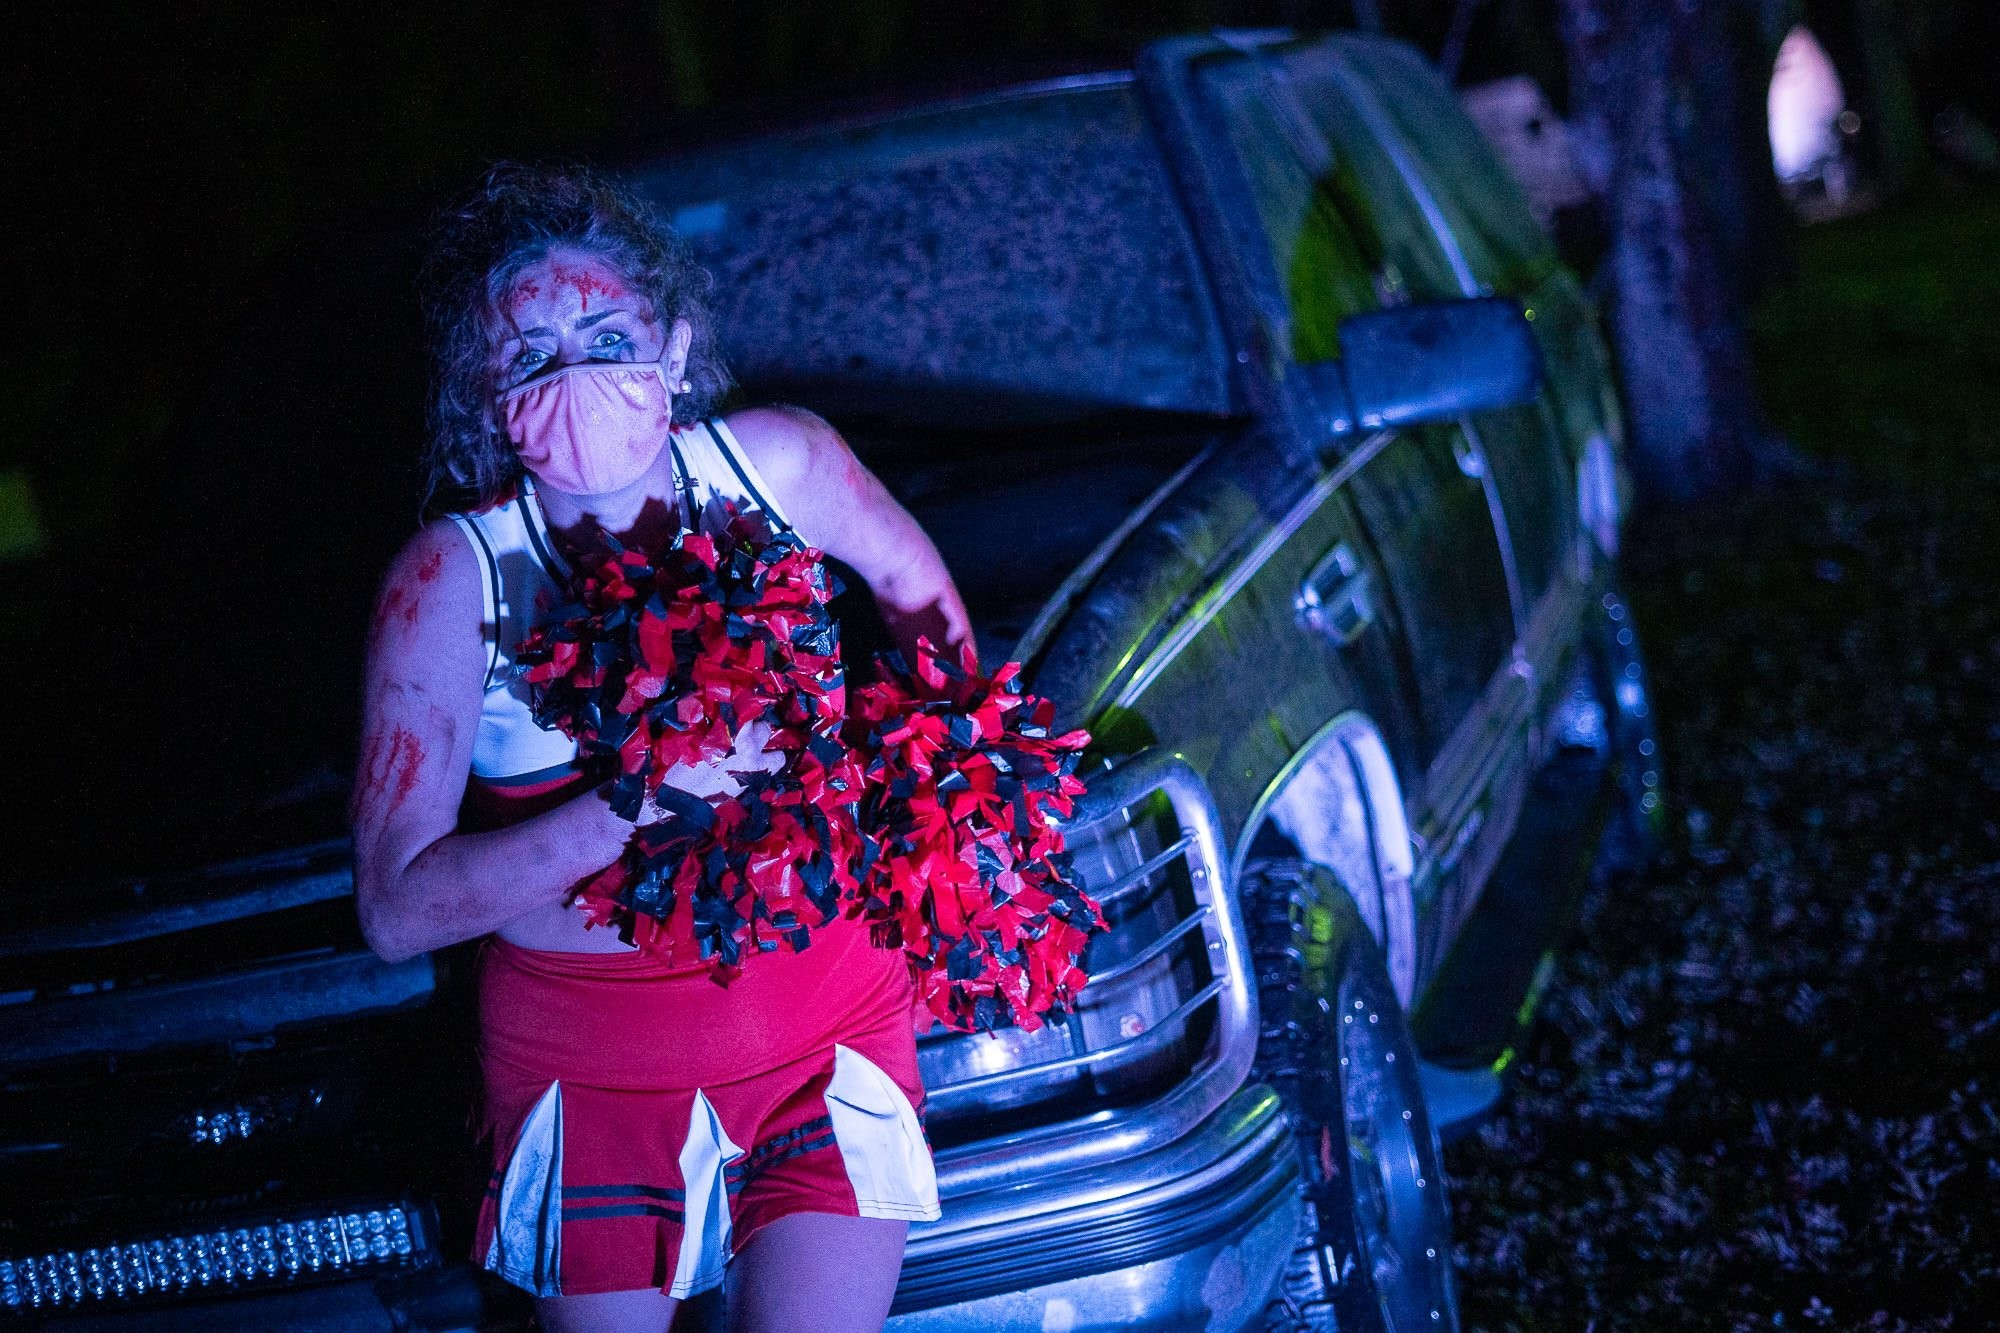 This Central Florida Drive Through Haunt Will Satisfy Seasonal Craving For Scares And Social Distancing Live Active Cultures Orlando Orlando Weekly